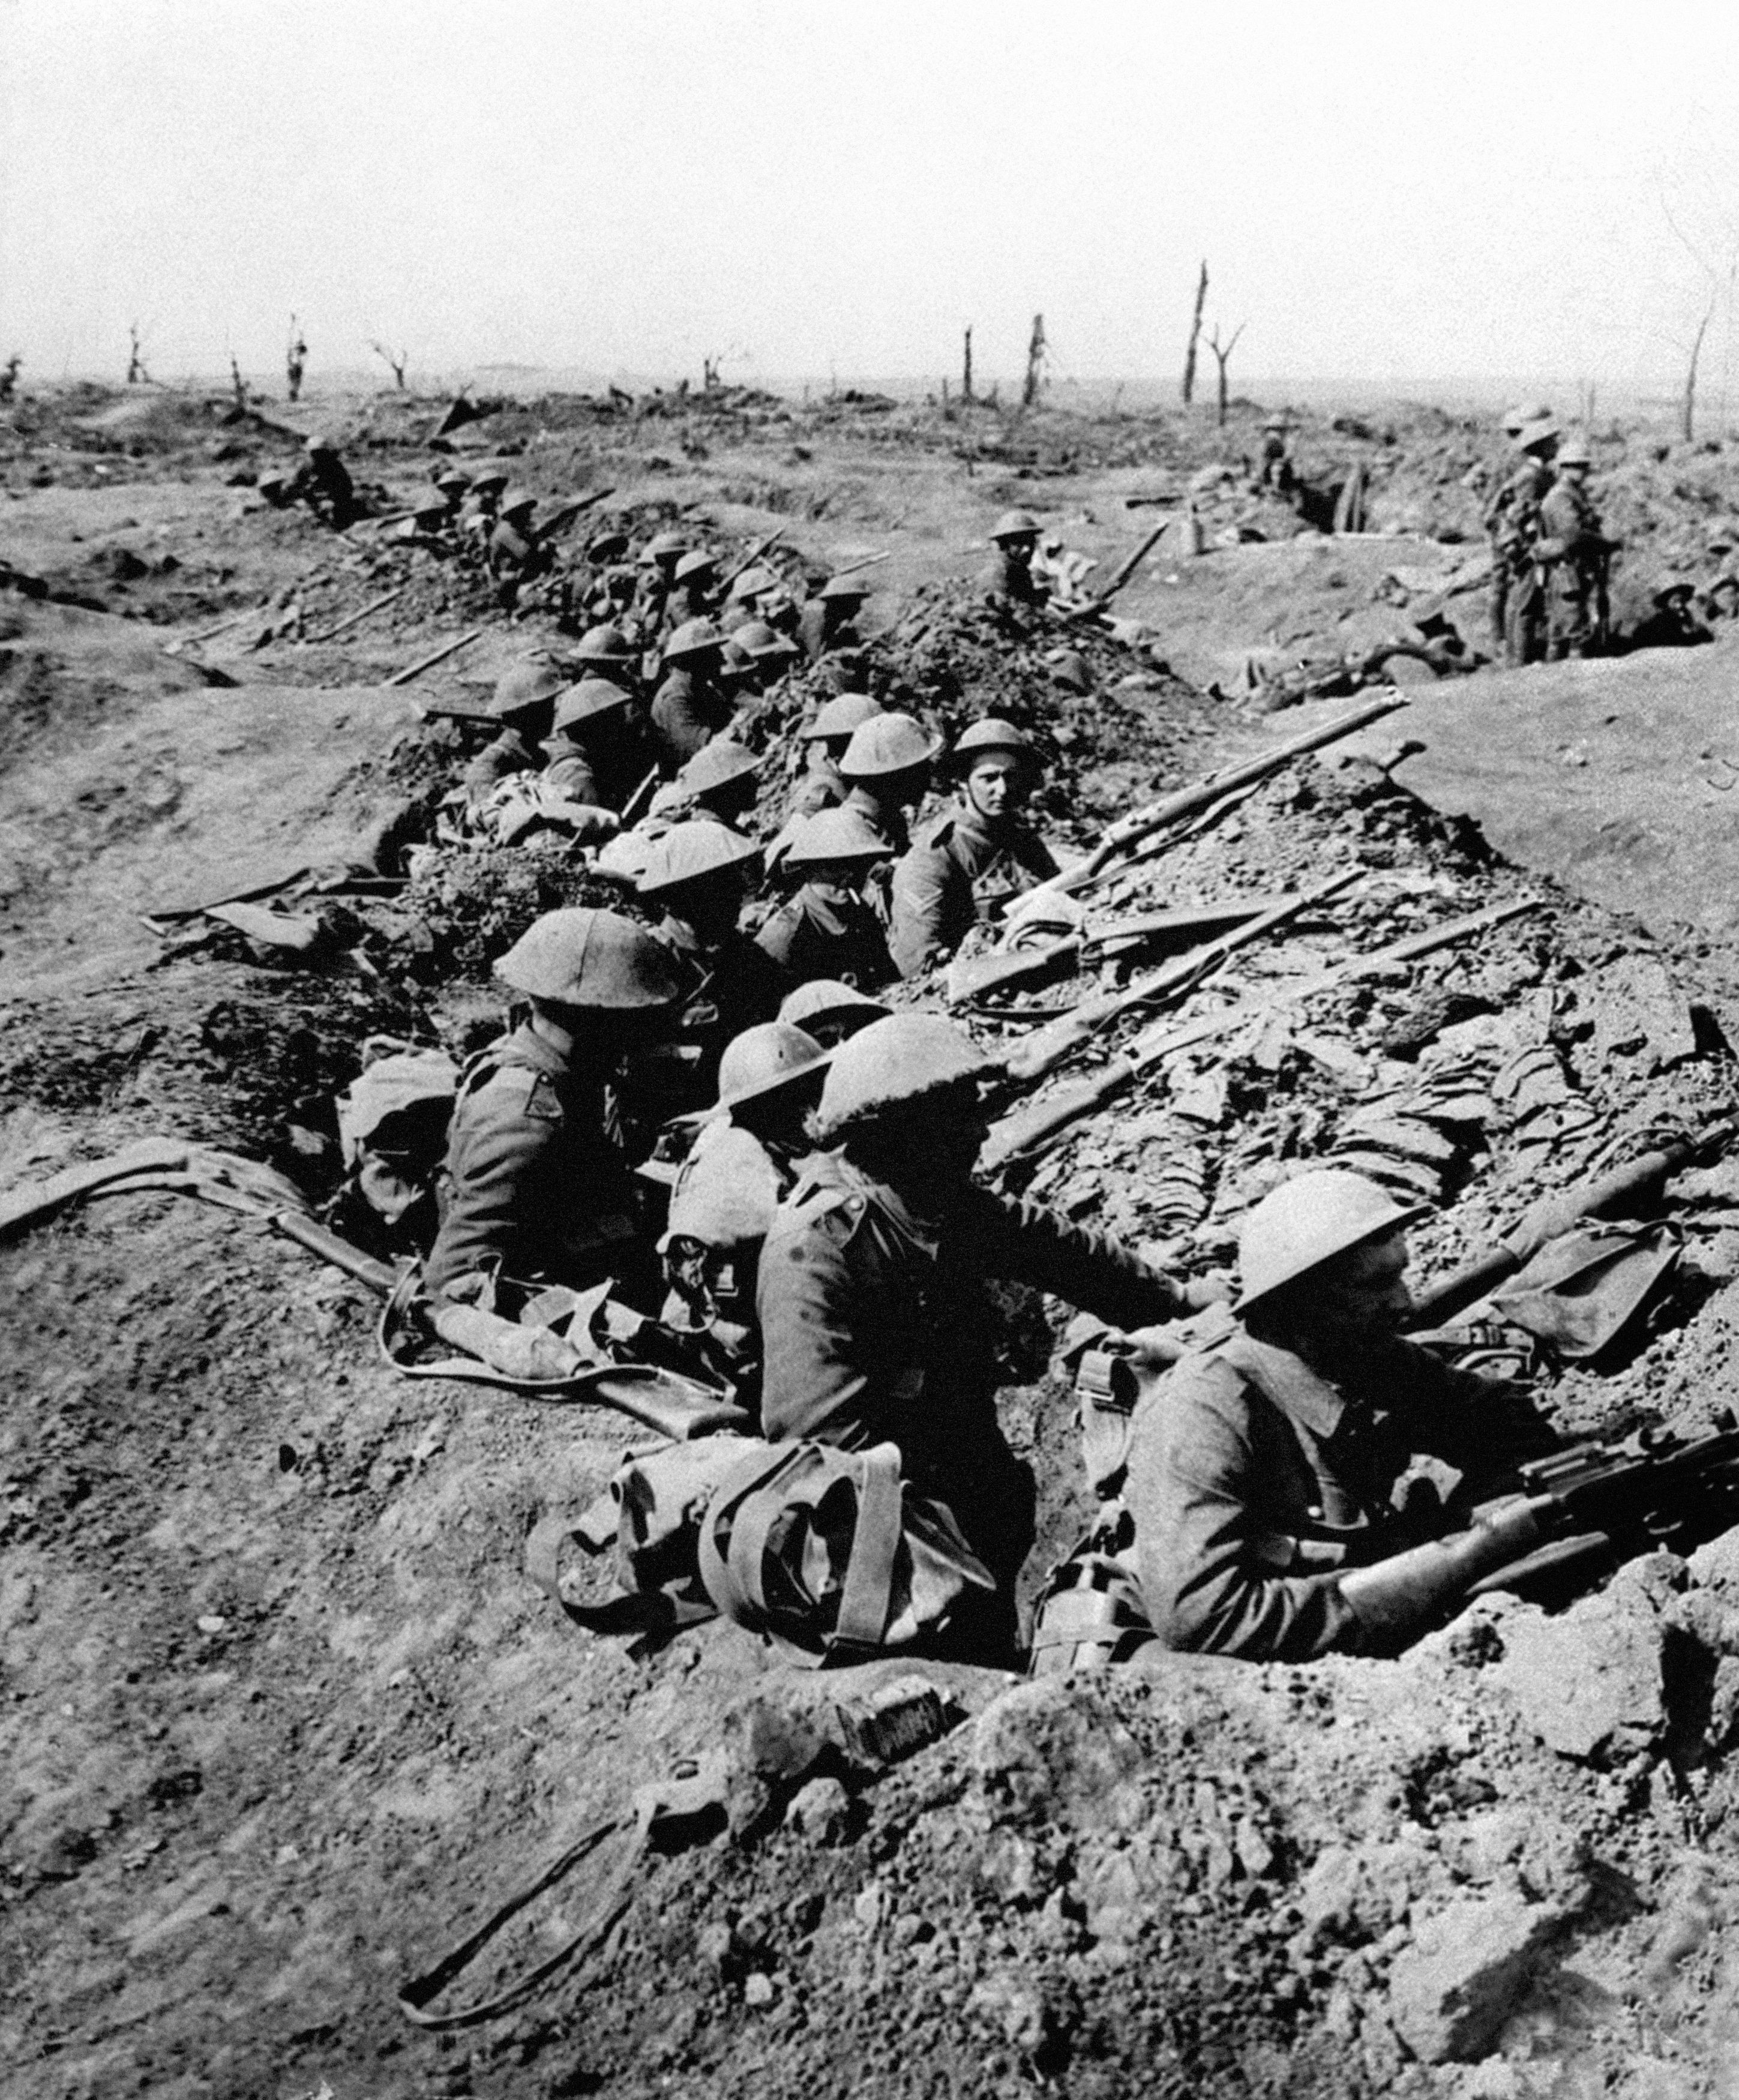 history essay about world war 1 Explore the history of world war i, including pivotal battles, milestone events, and cultural figures, only on historycom.